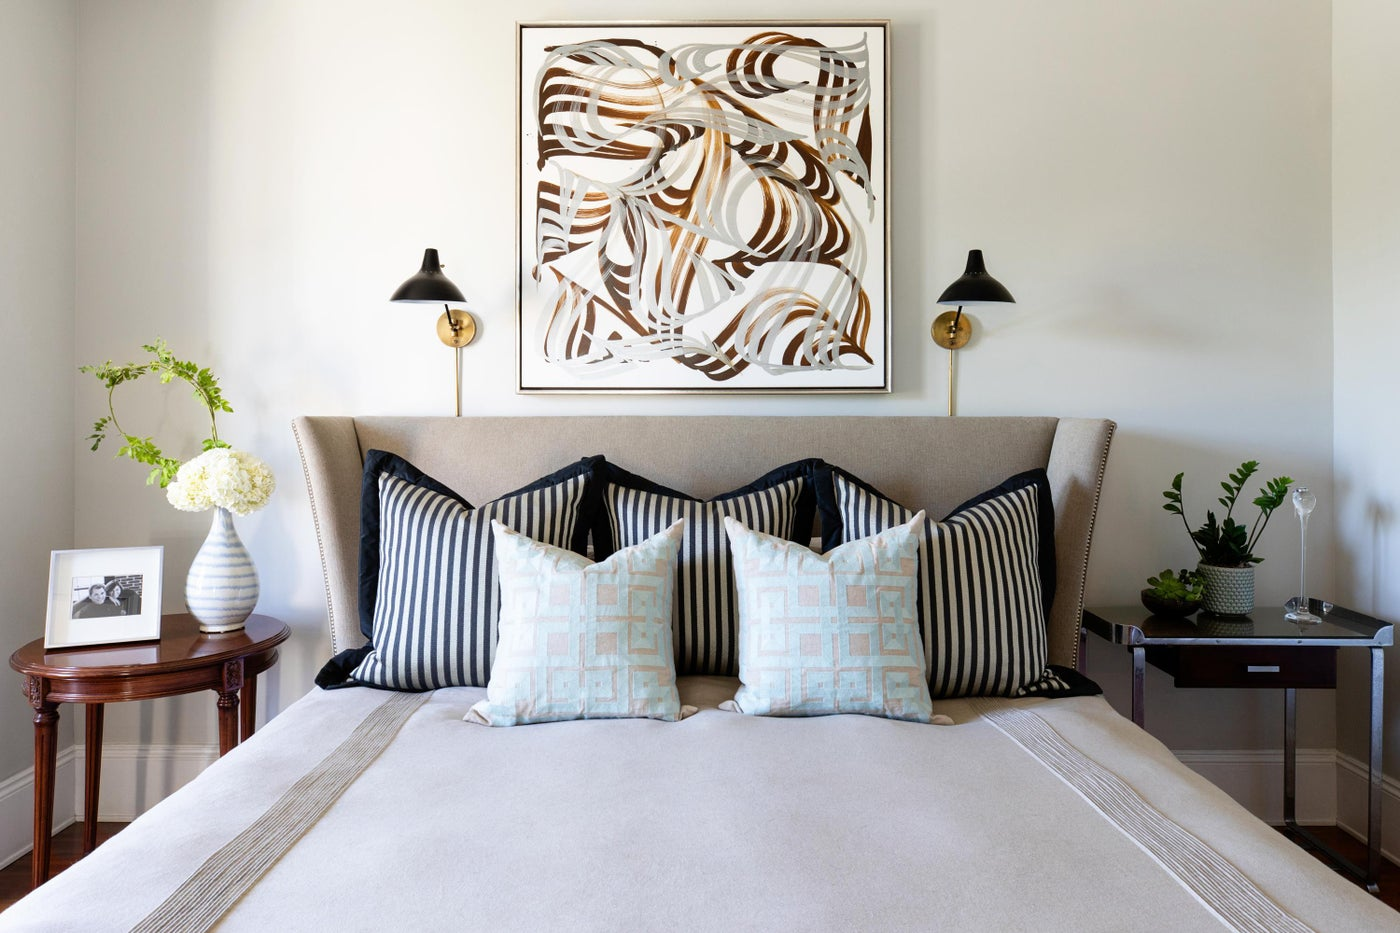 Eclectic Victorian master bedroom with abstract calligraphy painting by Yomar Agosto